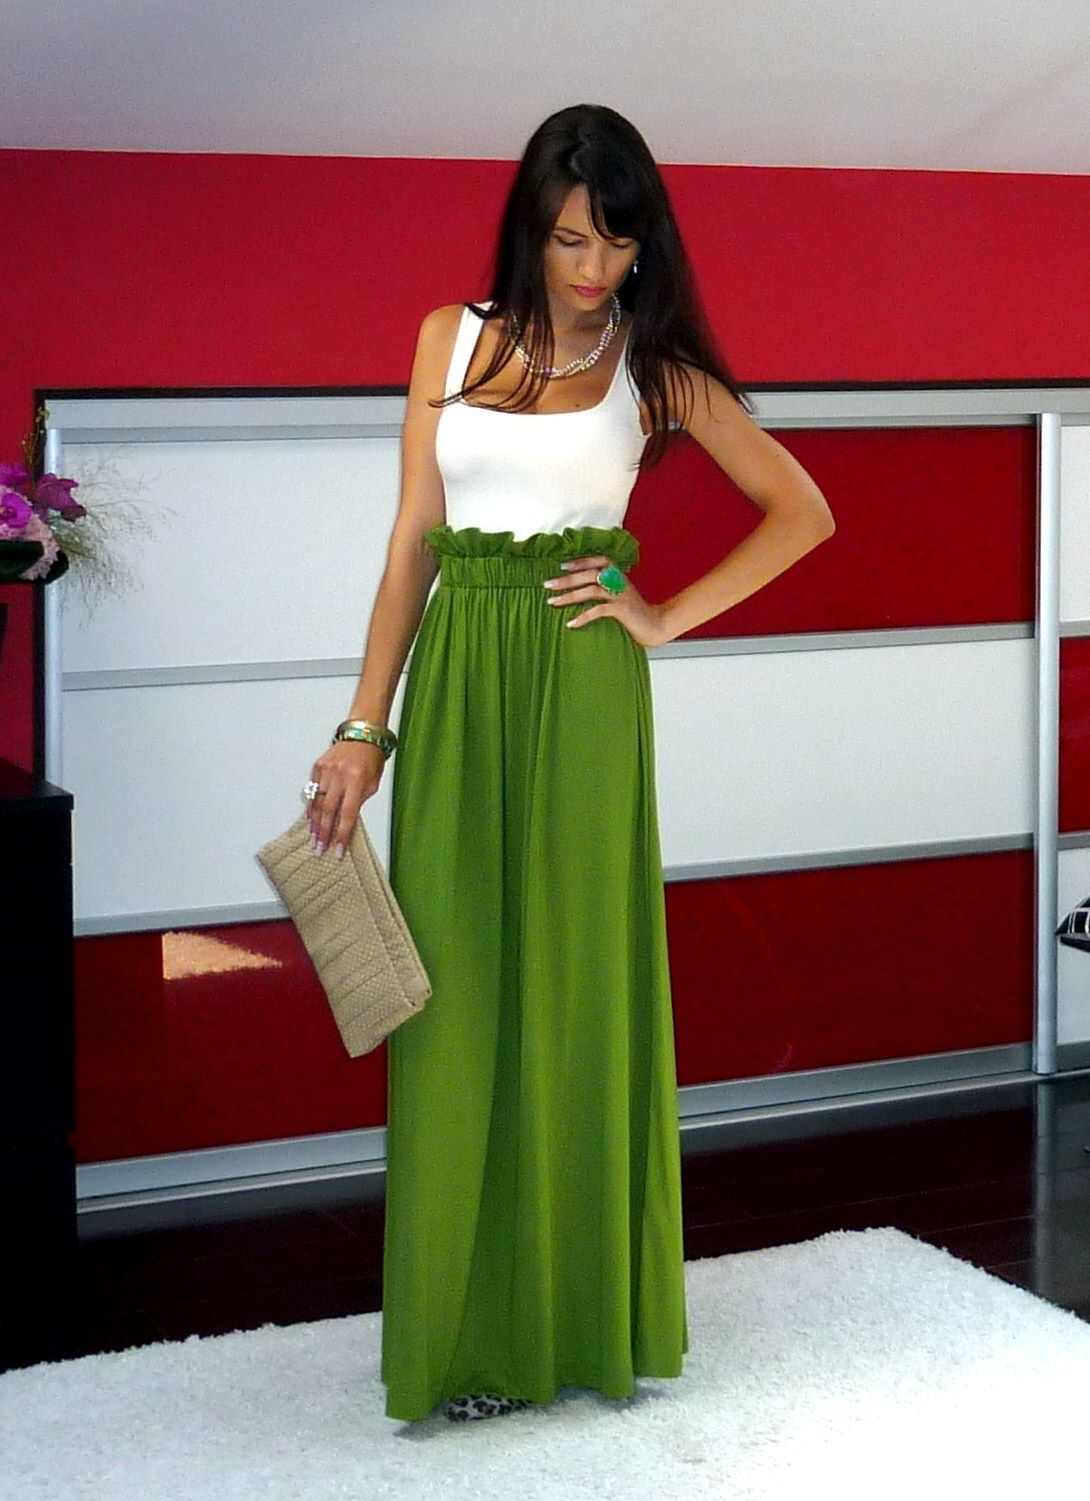 Olive green skirt my style pinterest green maxi olive green